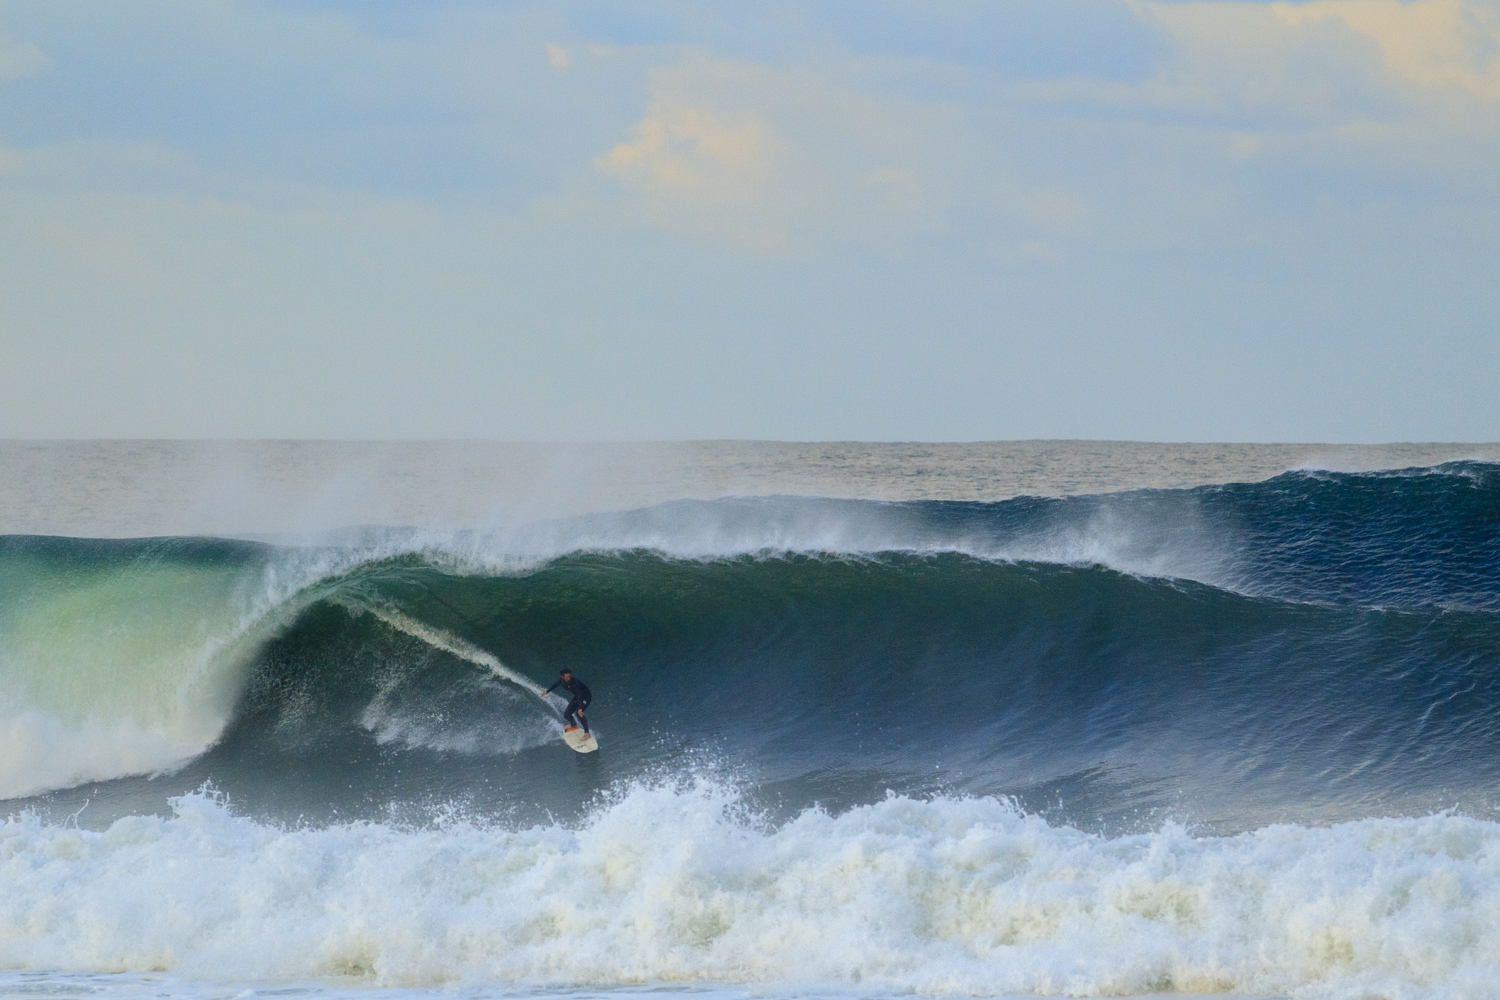 A surfer on a solid one, with an even bigger one behind.